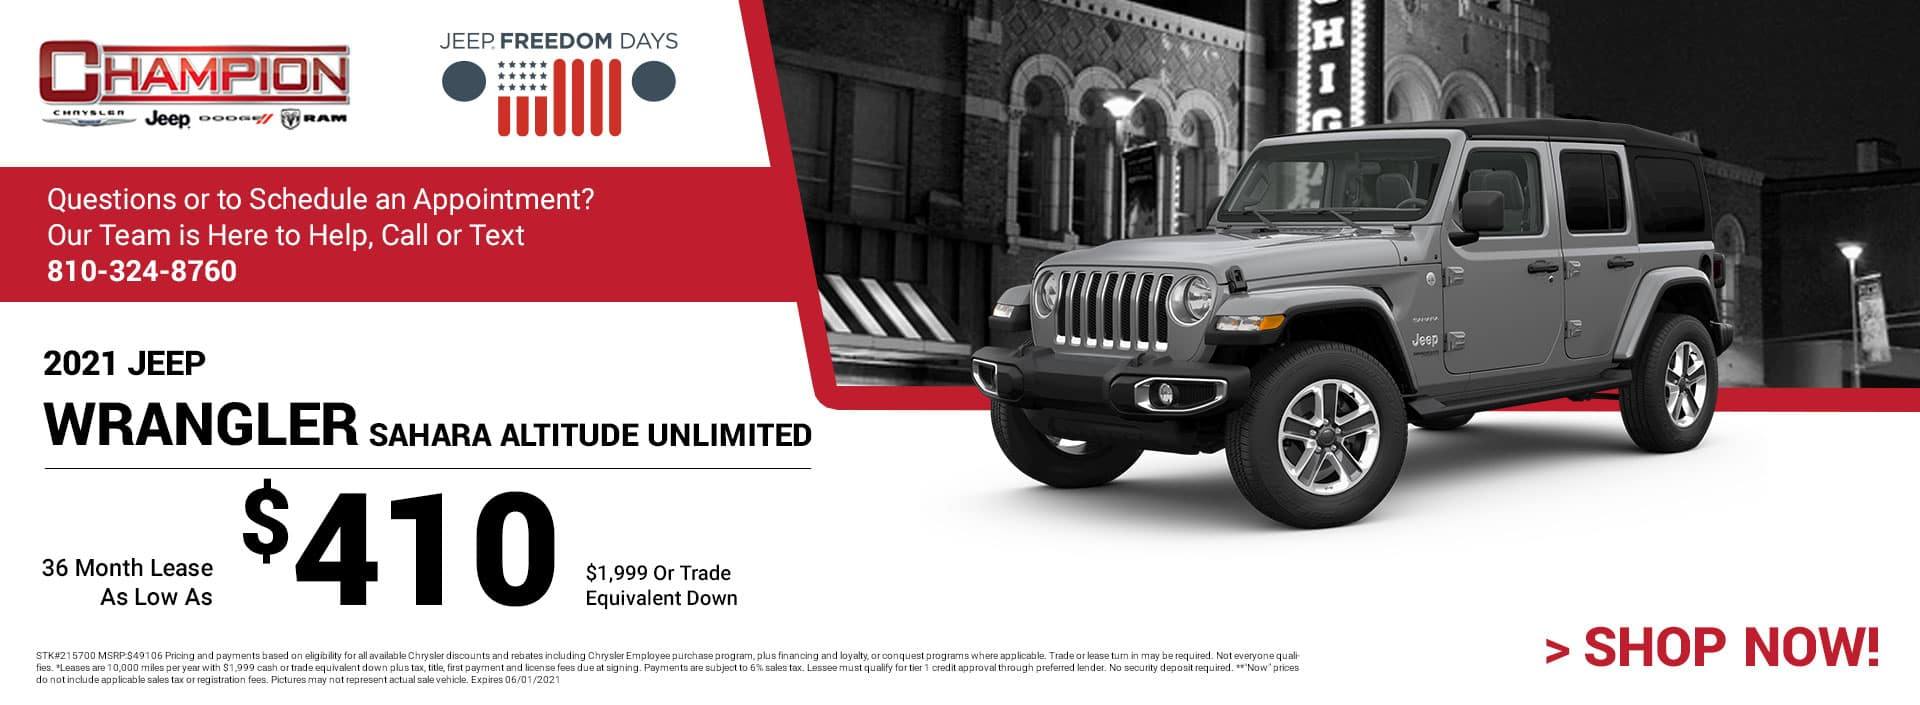 2021 Jeep Wrangler Sahara Altitude Unlimited 215700 $49,160 $1,999 or Trade Equivalent Down 36 $410